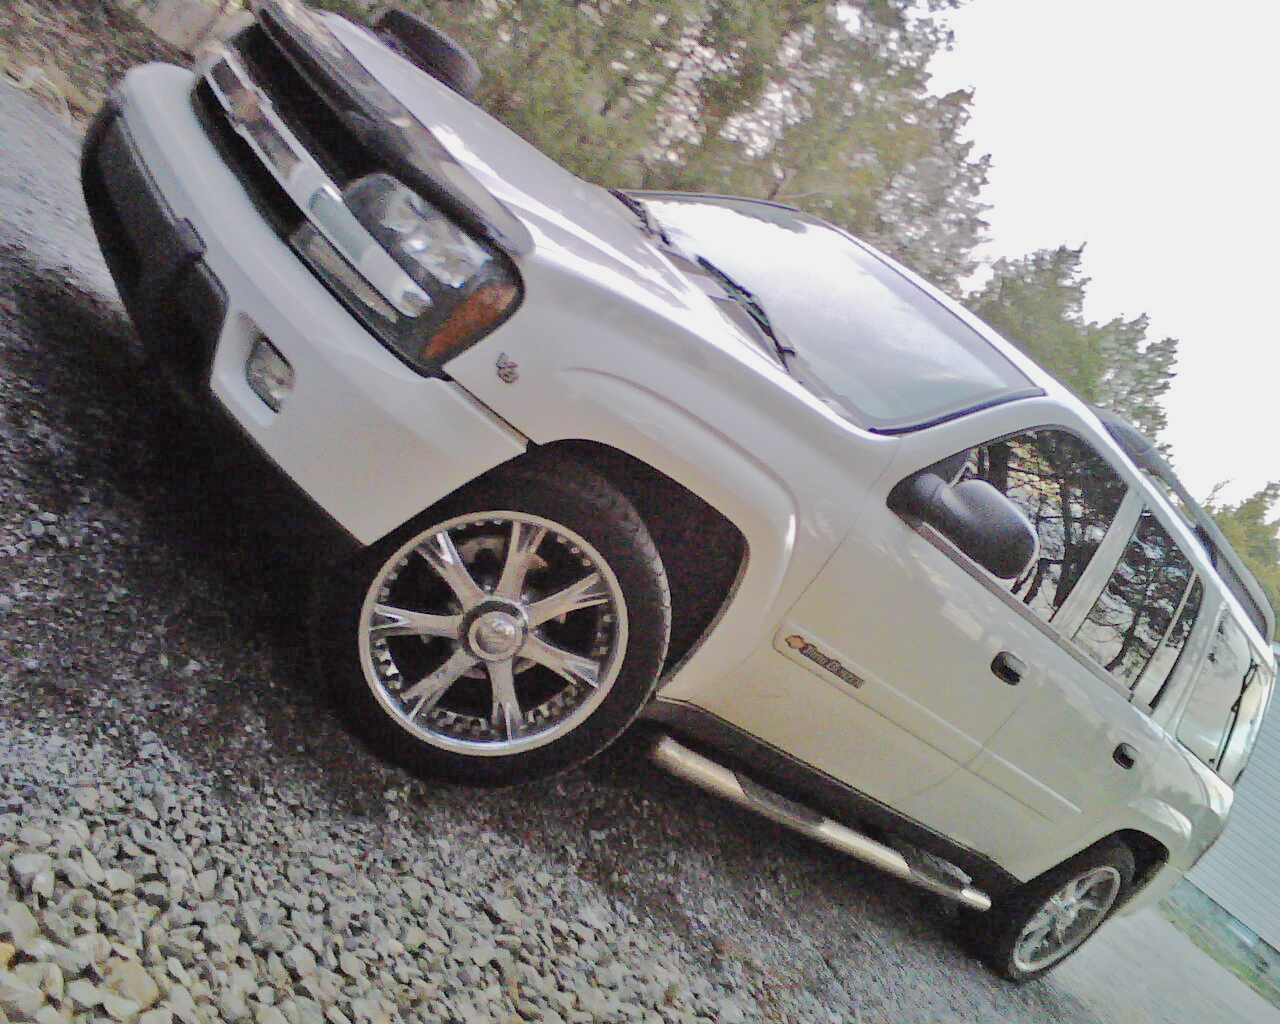 2004 Chevrolet TrailBlazer EXT 4 Dr LT SUV picture